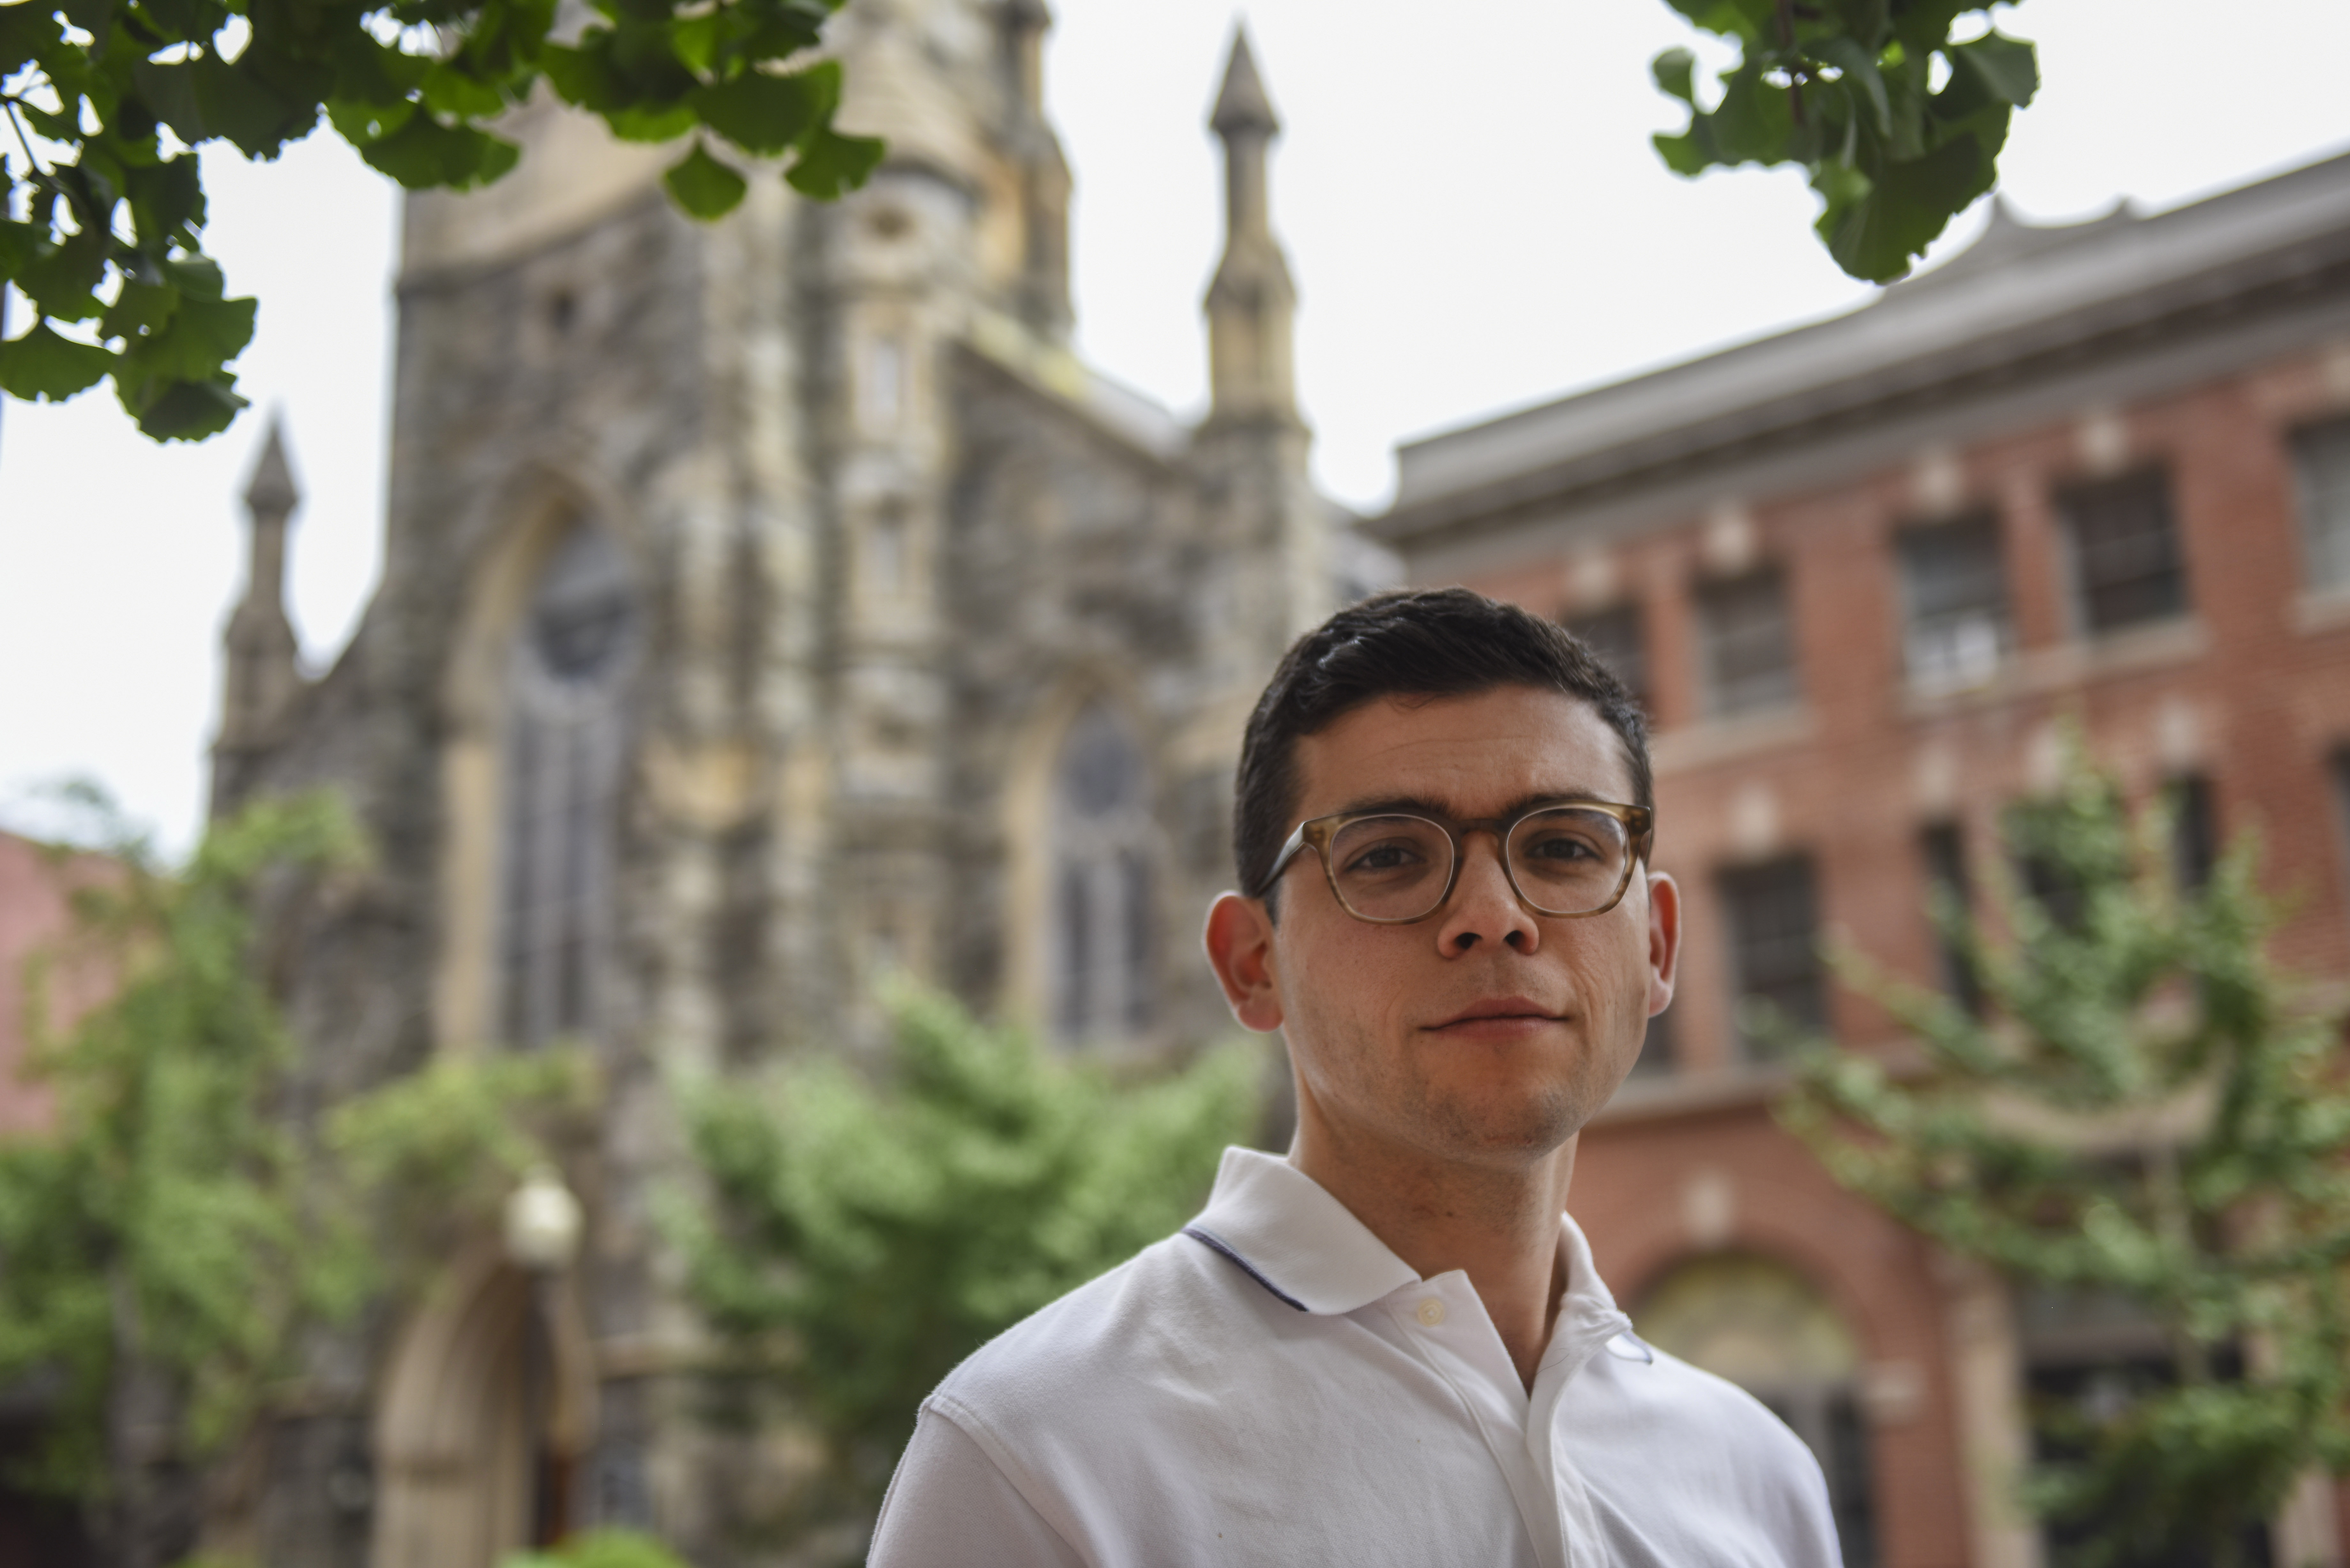 Matthew Mangiaracina stands outside of St. Mary Mother of God Catholic Church in Washington. Mangiaracina used to attend St. Patrick's but changed parishes this past week because he didn't want to face Cardinal Donald Wuerl. MUST CREDIT: Washington Post photo by Michael Robinson Chavez